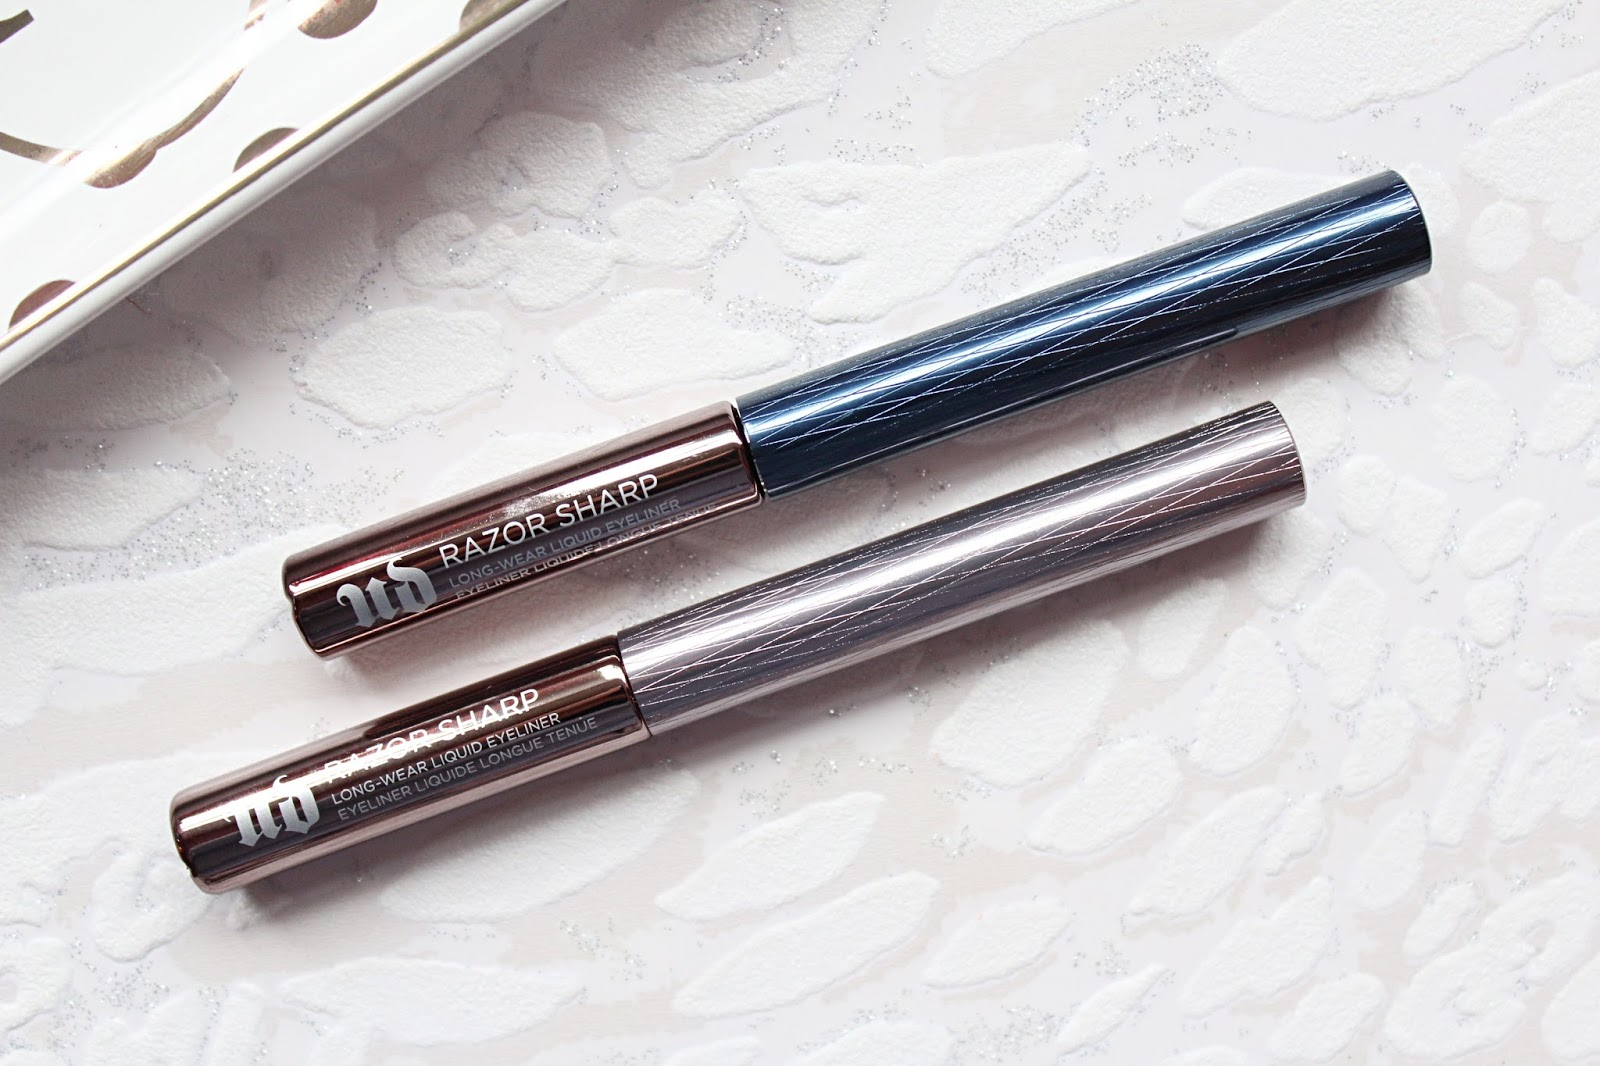 Urban Decay Razor Sharp Liners